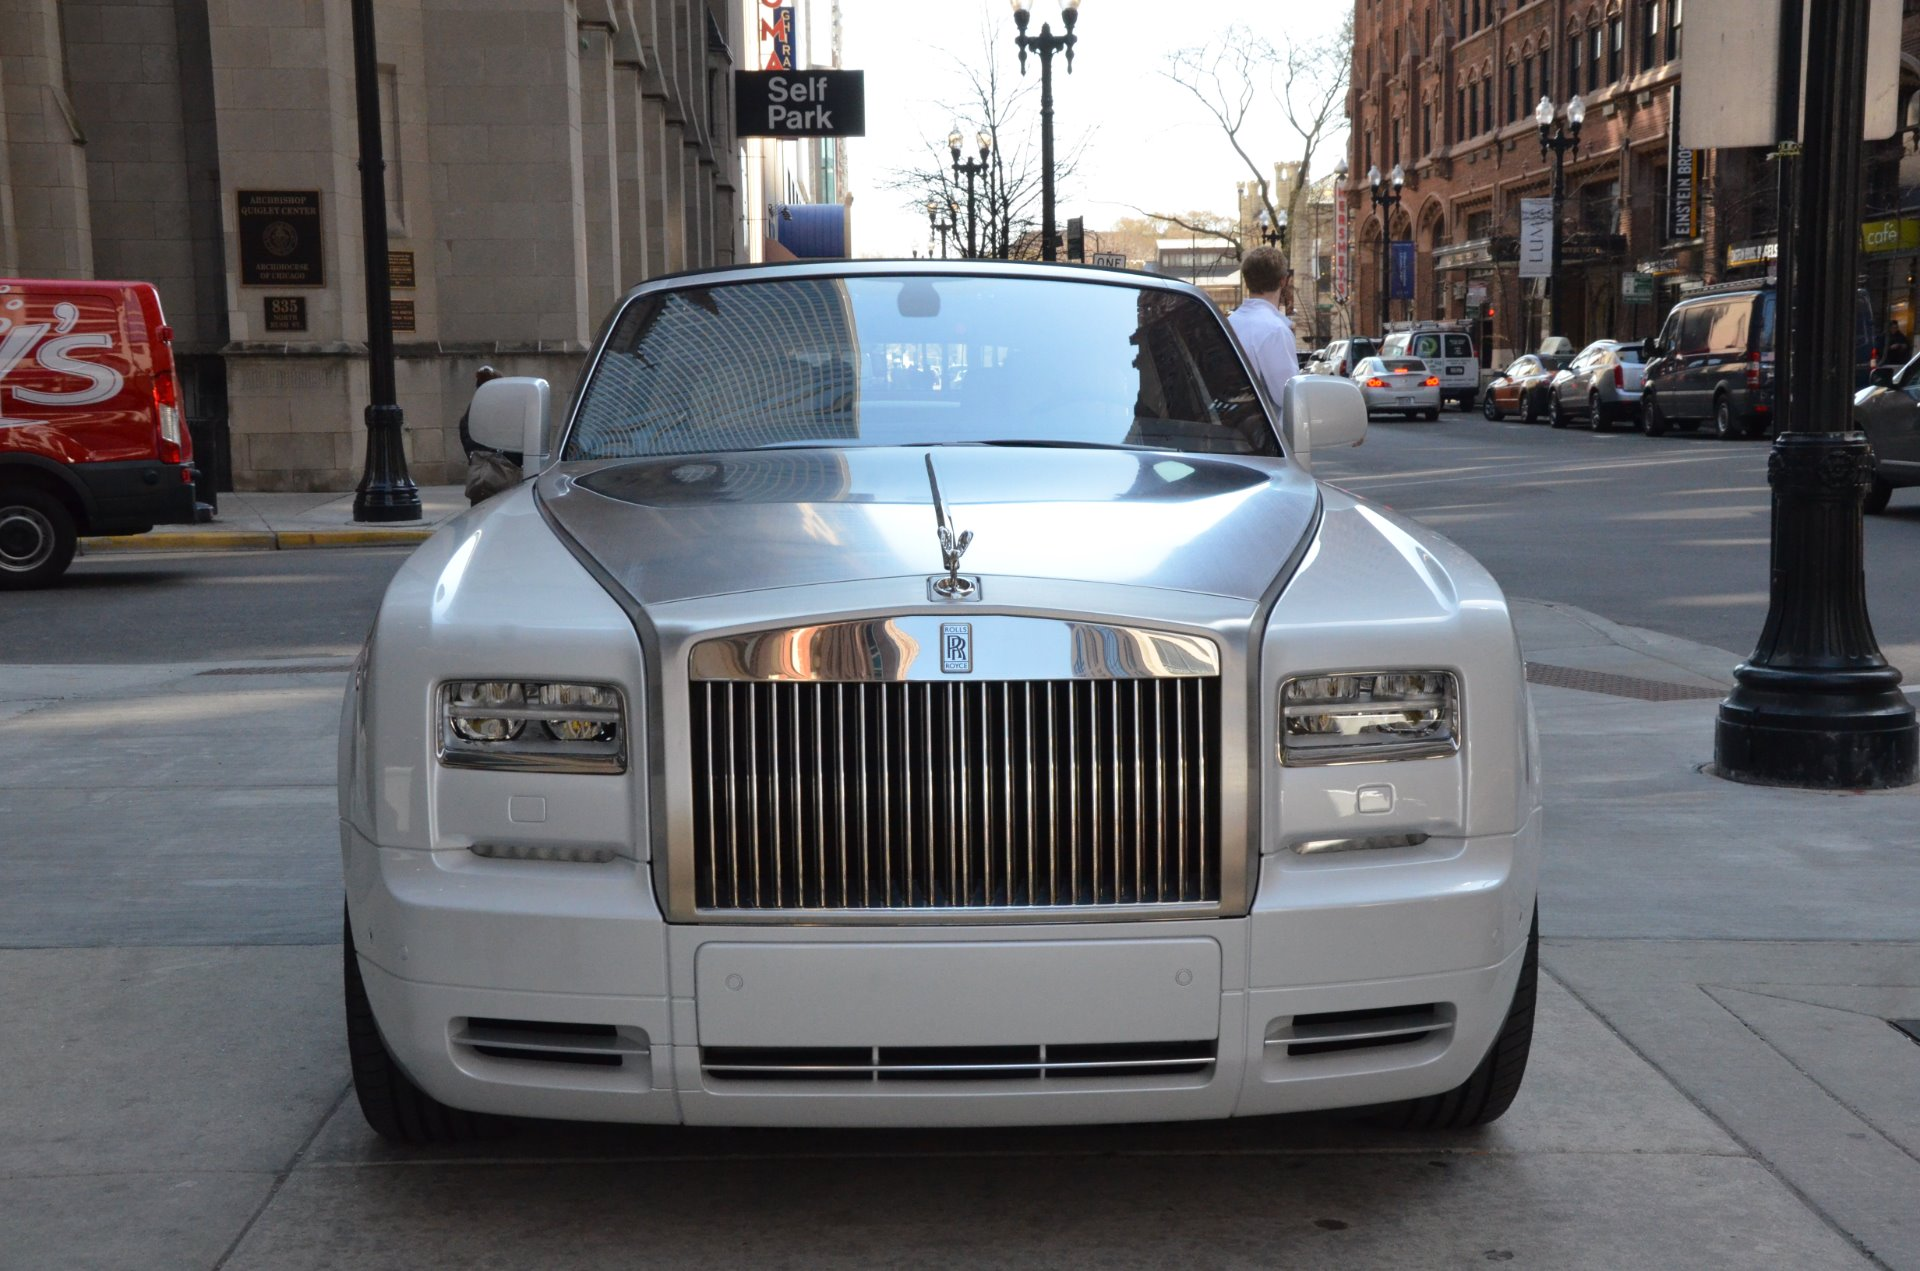 2016 rolls royce phantom drophead coupe stock r290 for sale near chicago il il rolls royce. Black Bedroom Furniture Sets. Home Design Ideas